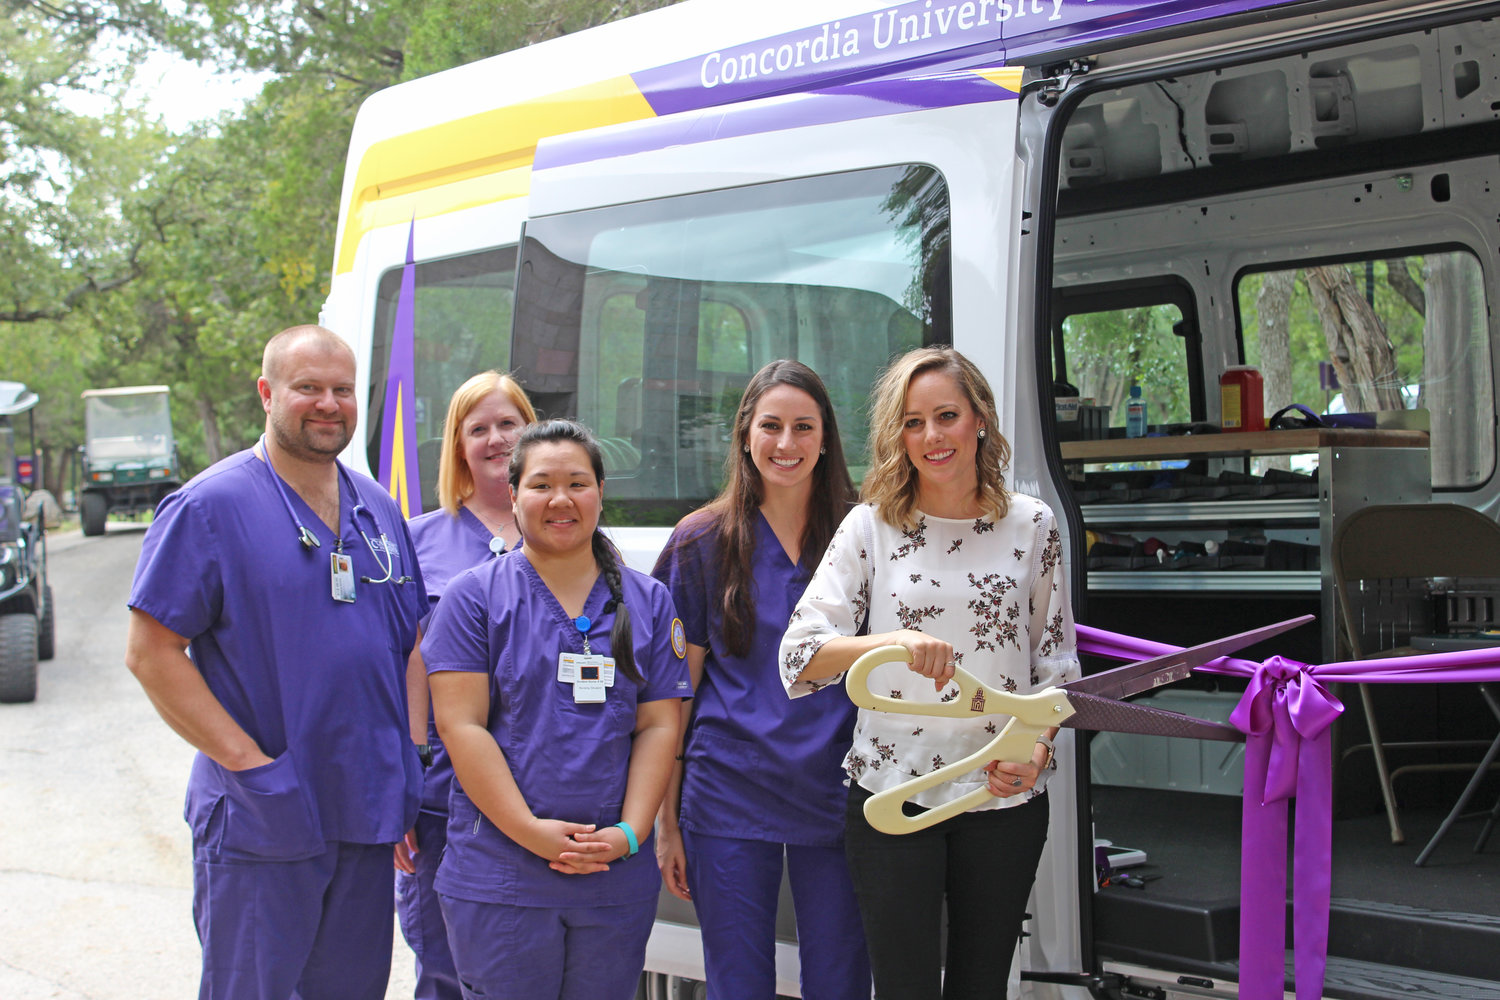 From left to right, Darrell Kalina, Amy Schneberger, Ann Marie Nguyen, Haylee Rowlette and Caitlin Rowlette stand together and prepare to cut the ribbon to Concordia's new nursing van on Sept. 28, 2018.